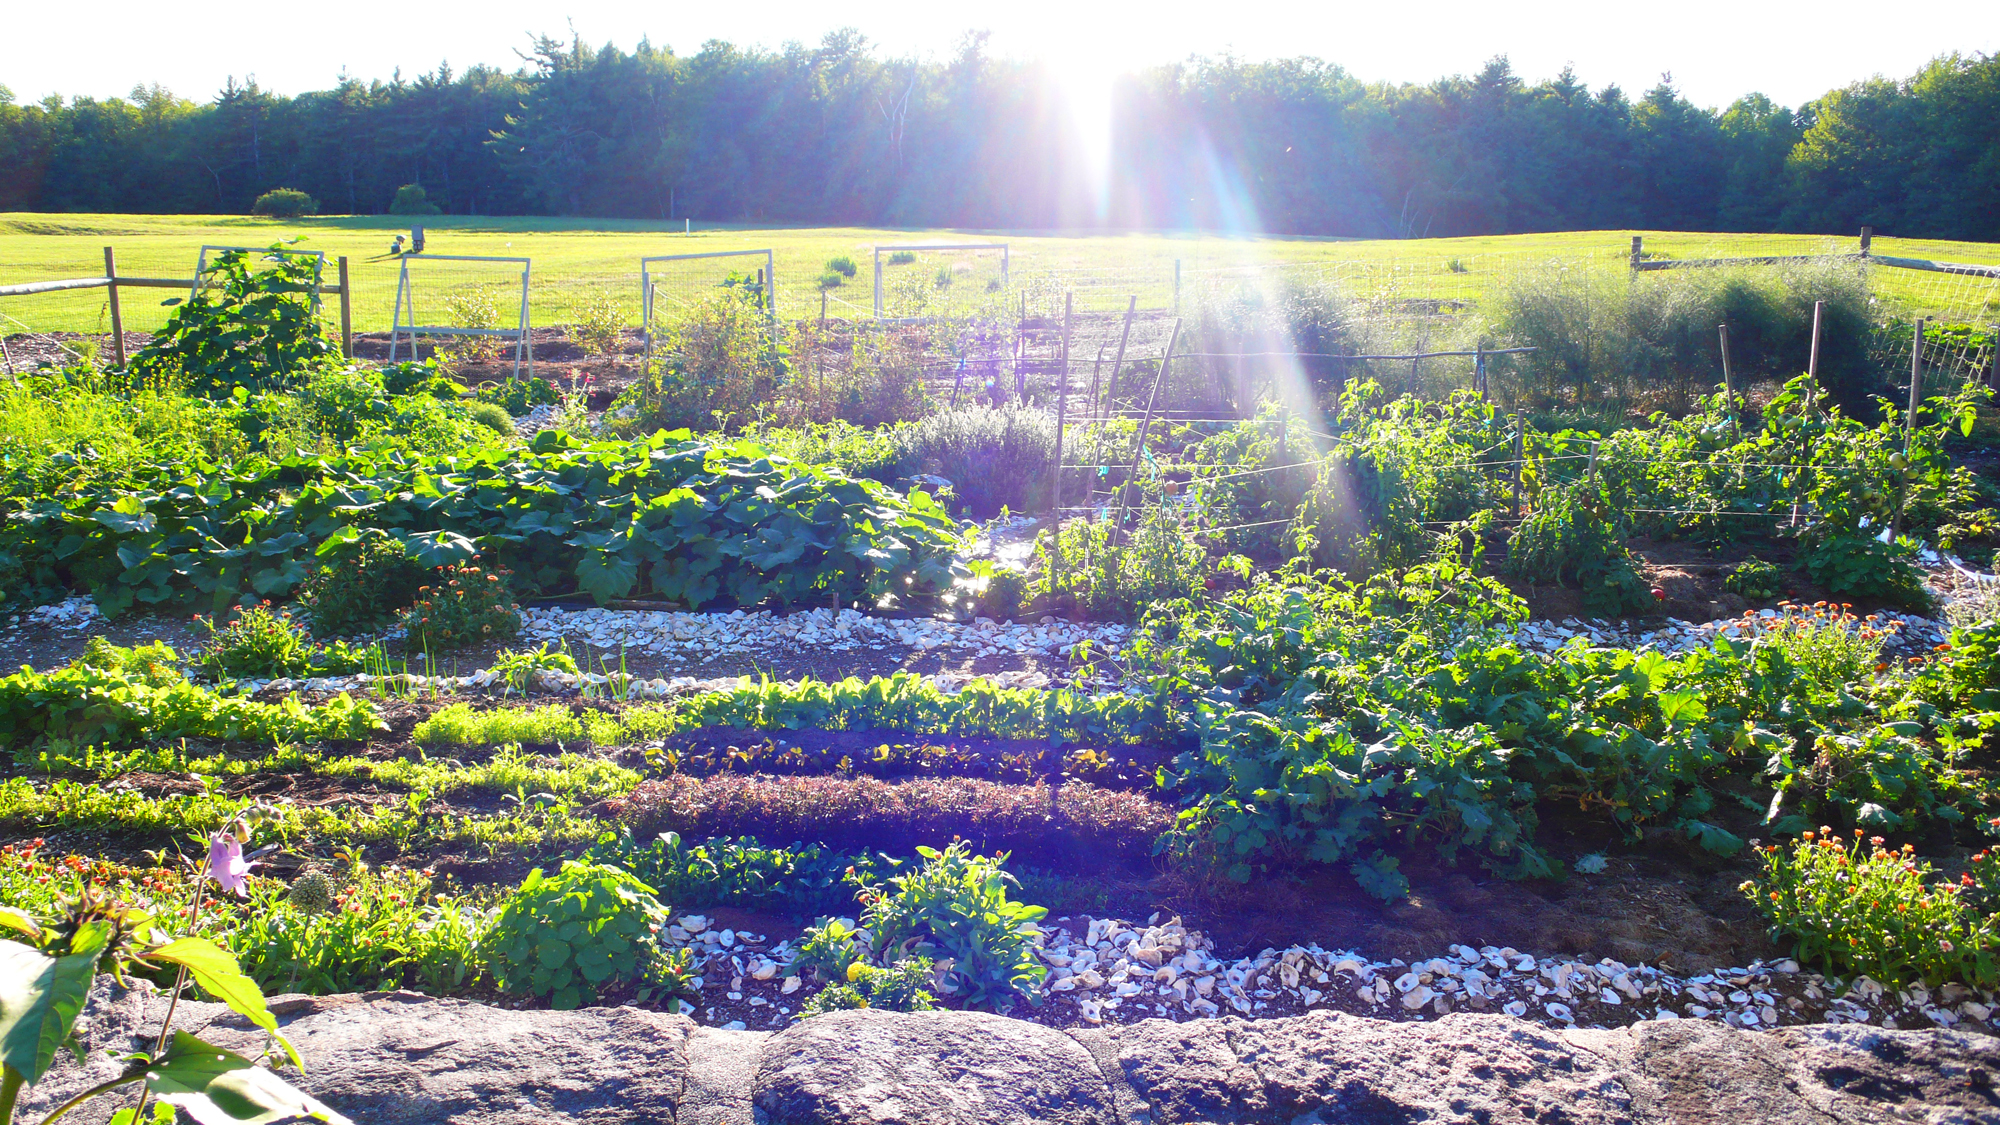 growing food in chemical free soil where there is a harmonious balance between minerals compost and effective micro organisms resulting in optimum nutrient